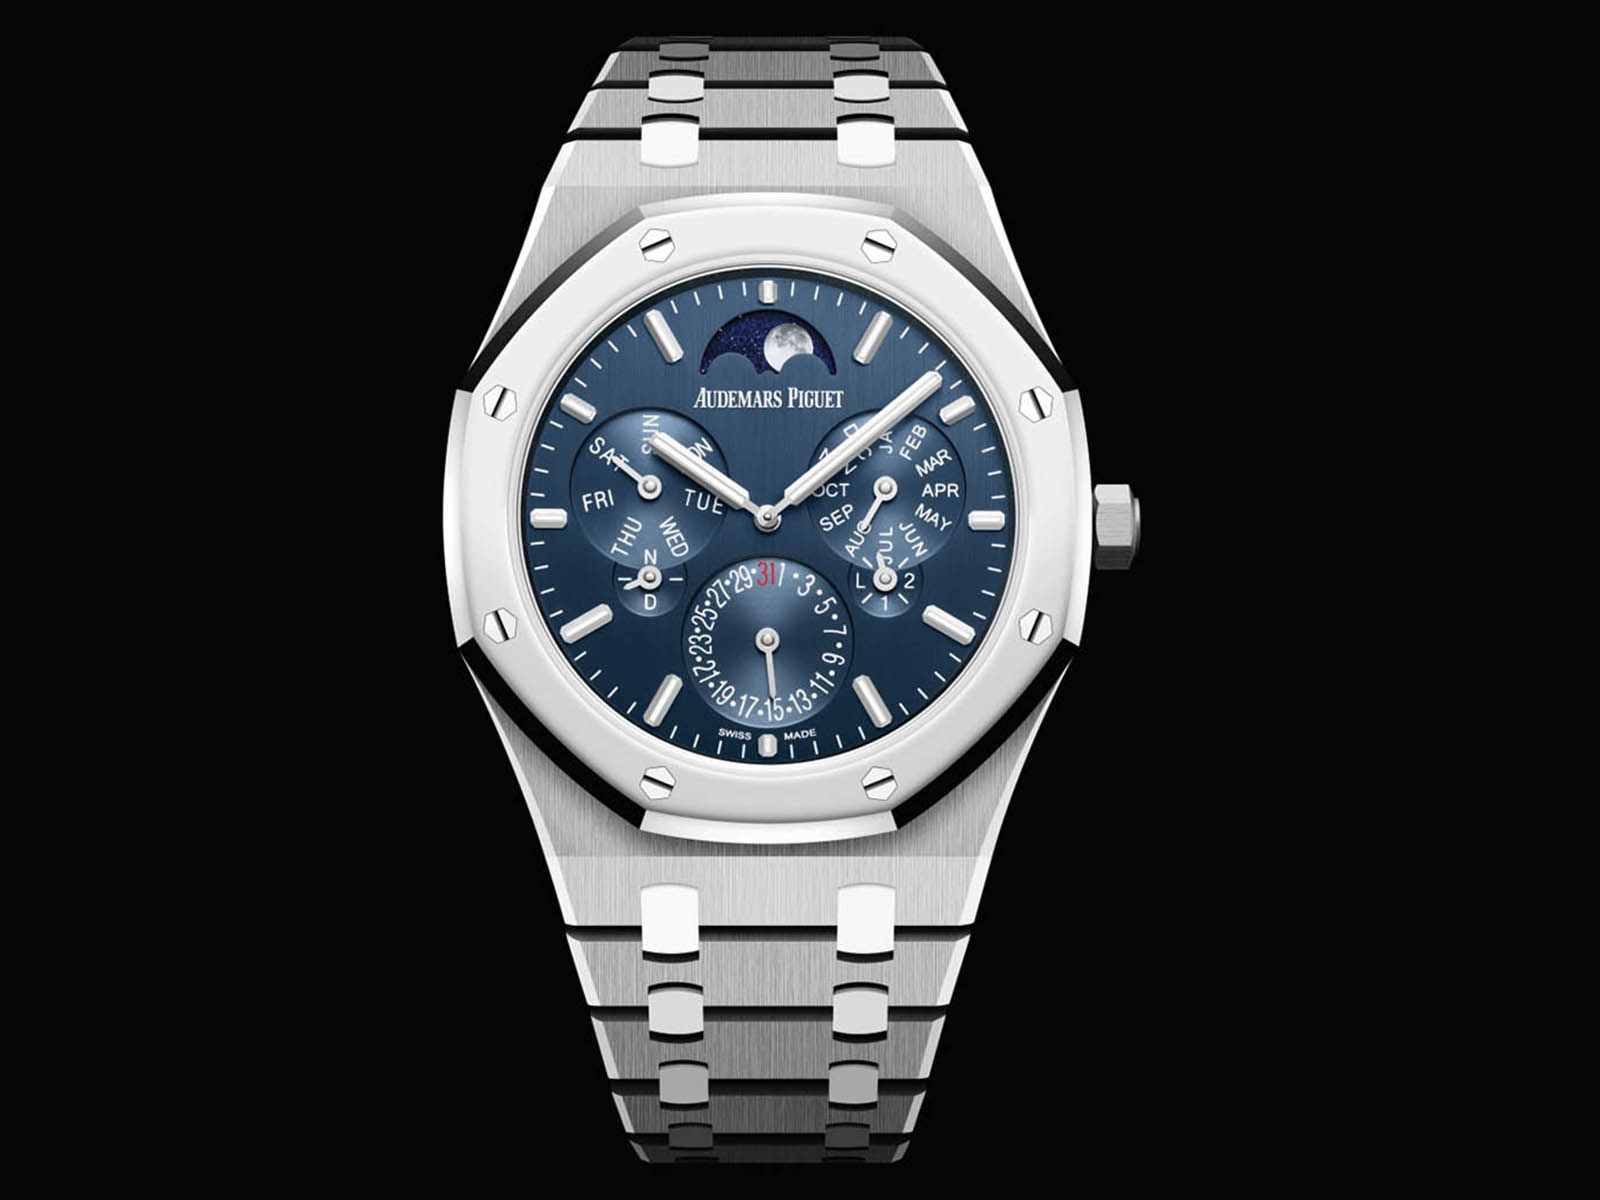 26586ip-oo-1240ip-01-audemars-piguet-royal-oak-perpetual-calendar-ultra-thin-5.jpg